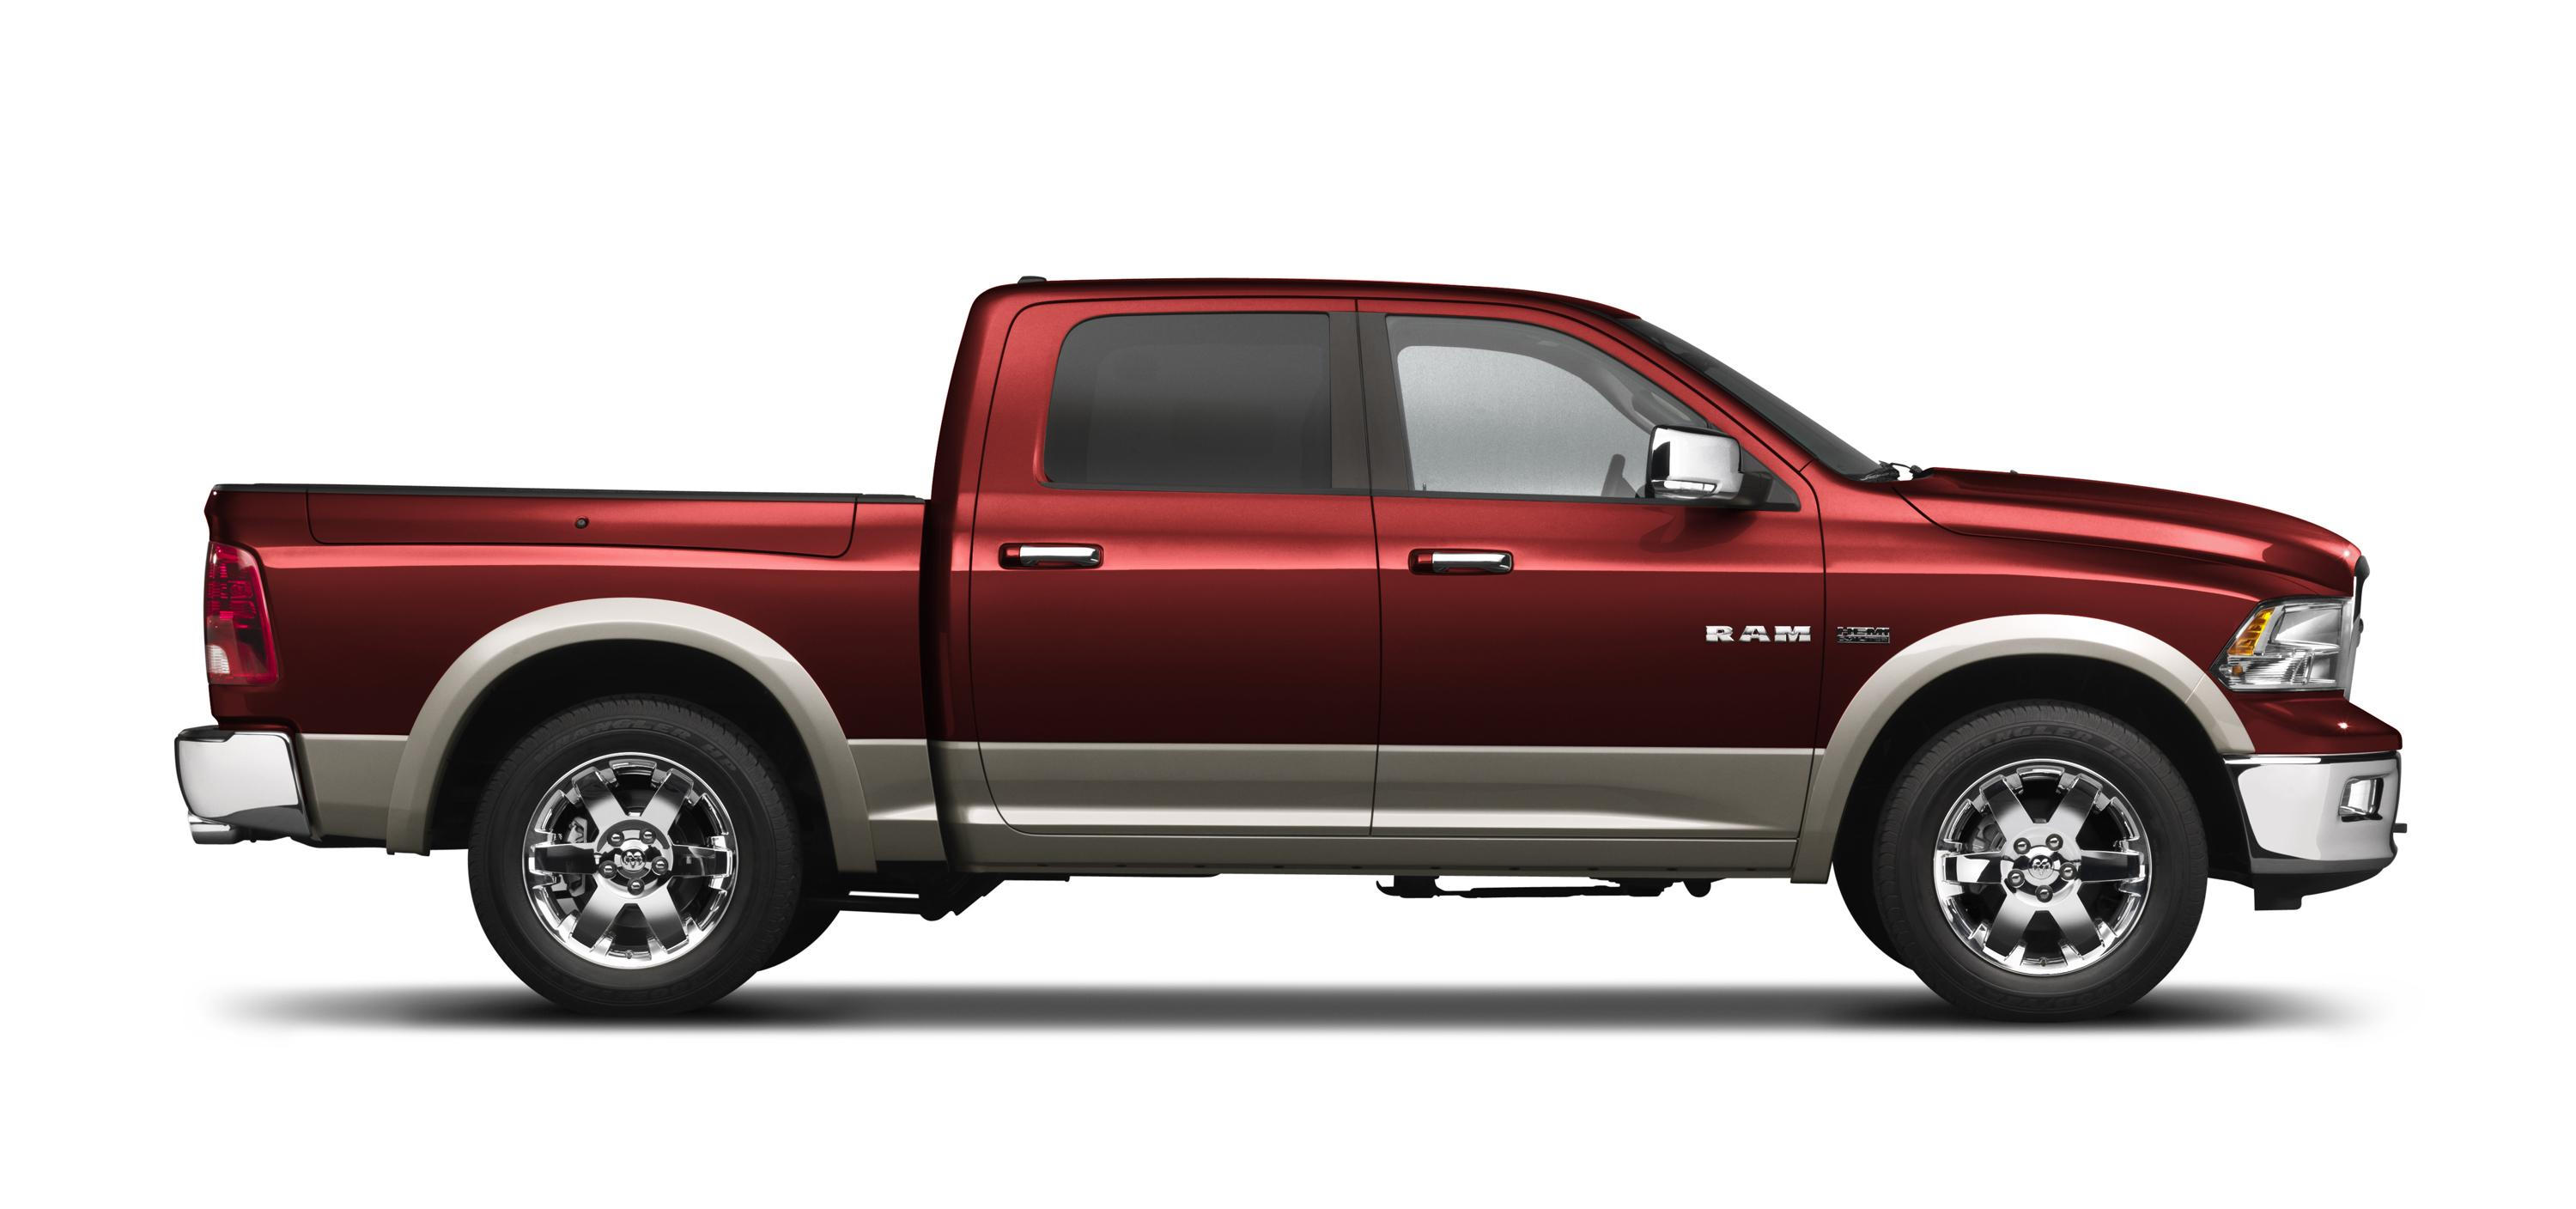 "All-new 2009 Dodge Ram Named ""Full-Size Pickup Truck of Texas"""